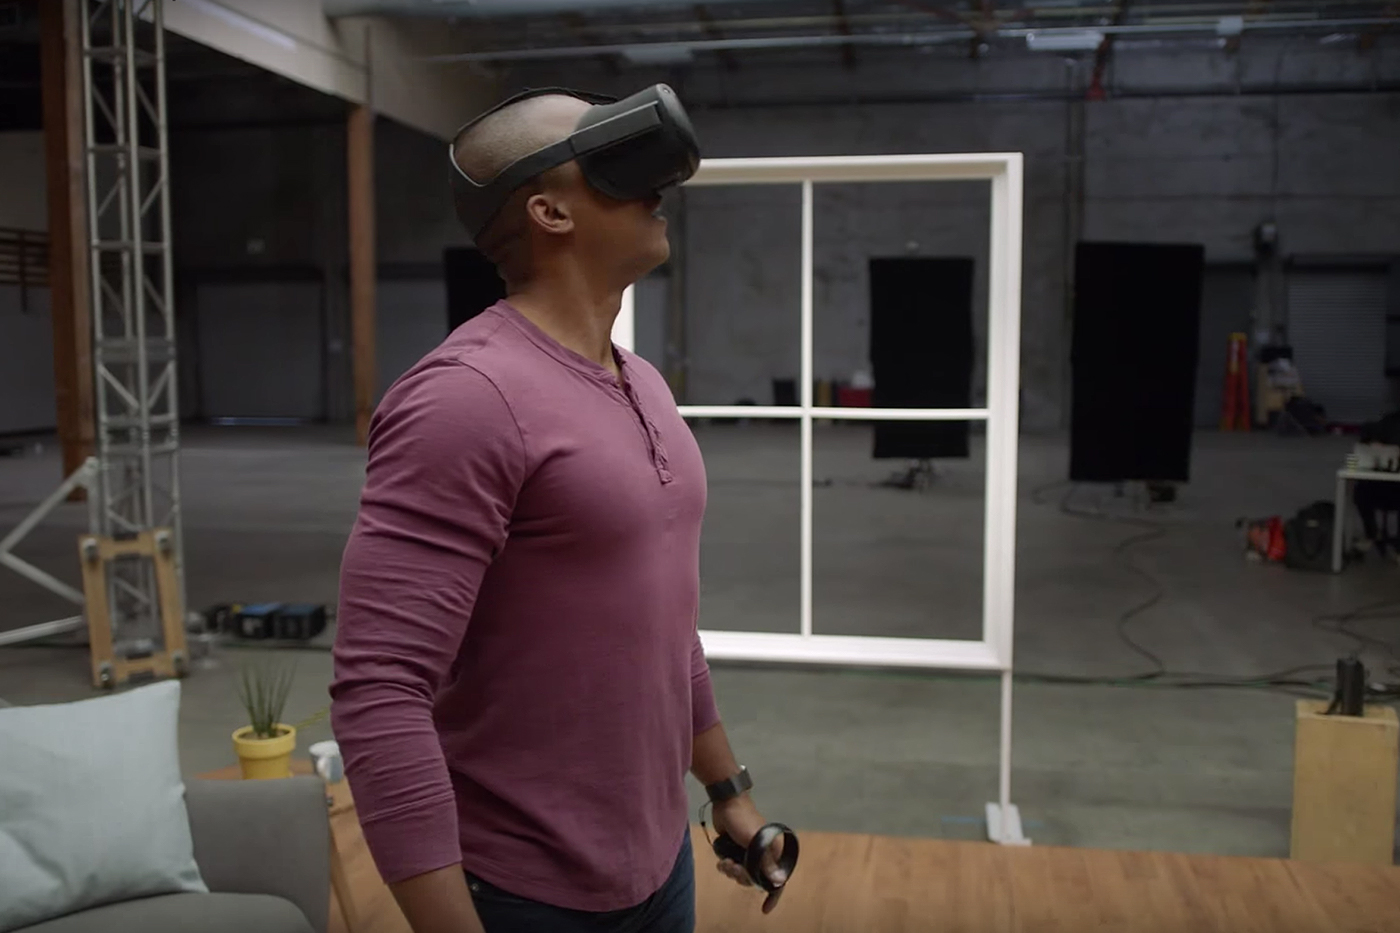 A man wearing the Oculus Santa Cruz Headset in a room.